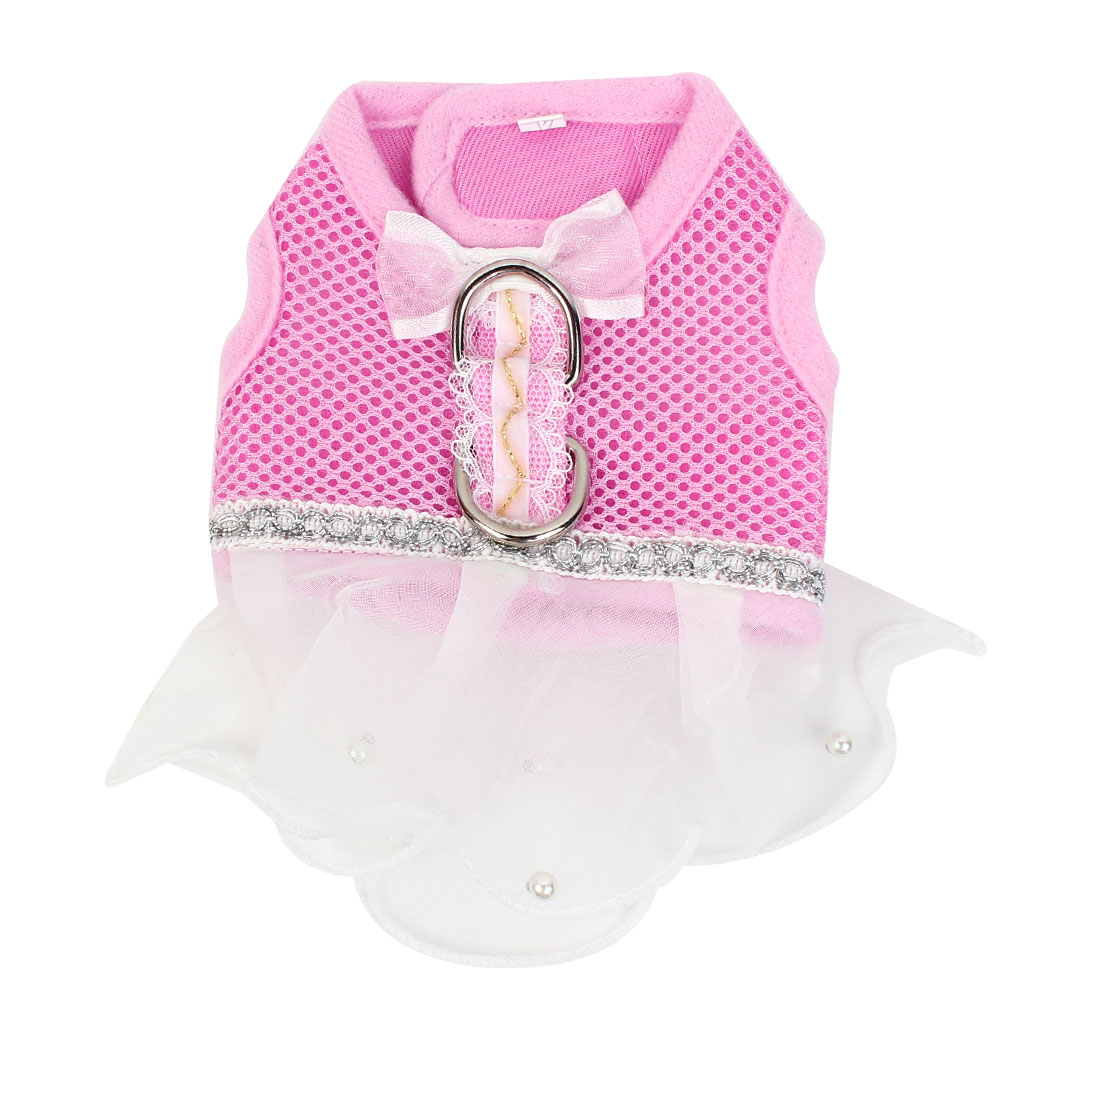 Pet Dog Puppy Detachable Closure Netty Design Dress Apparel Skirt Pink White Size XS